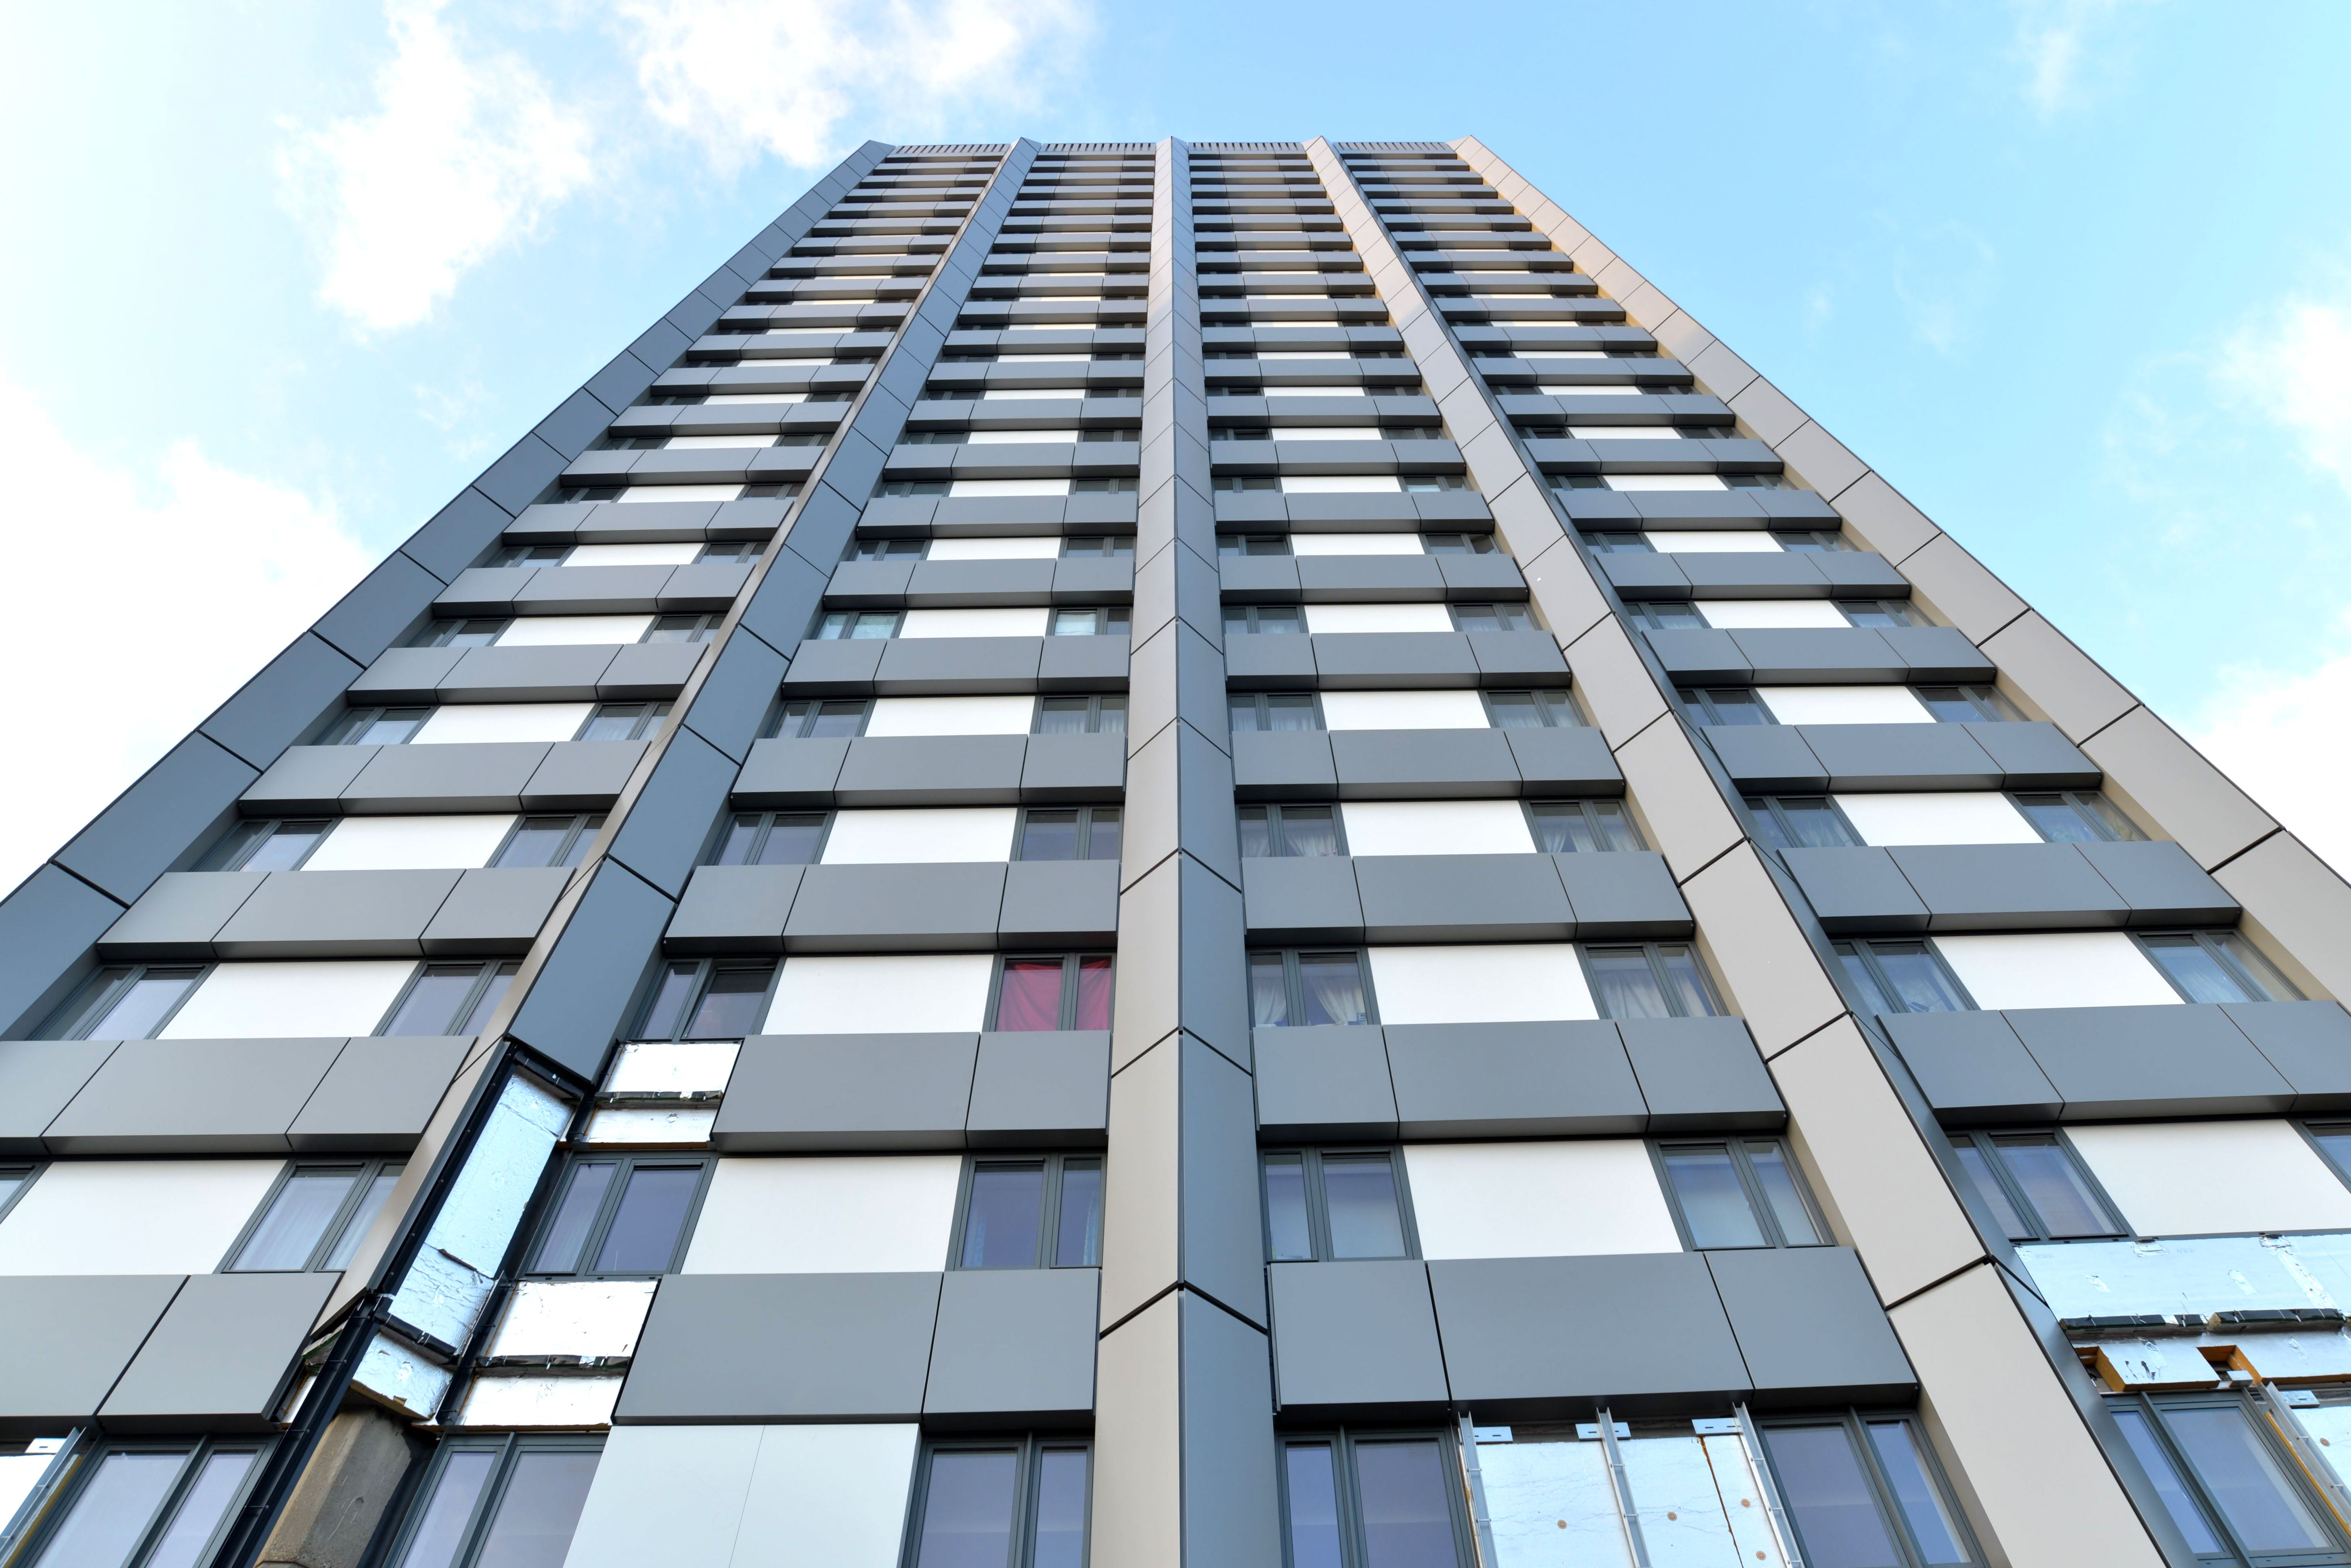 Building Cladding Panels : Grenfell tower cladding e architect